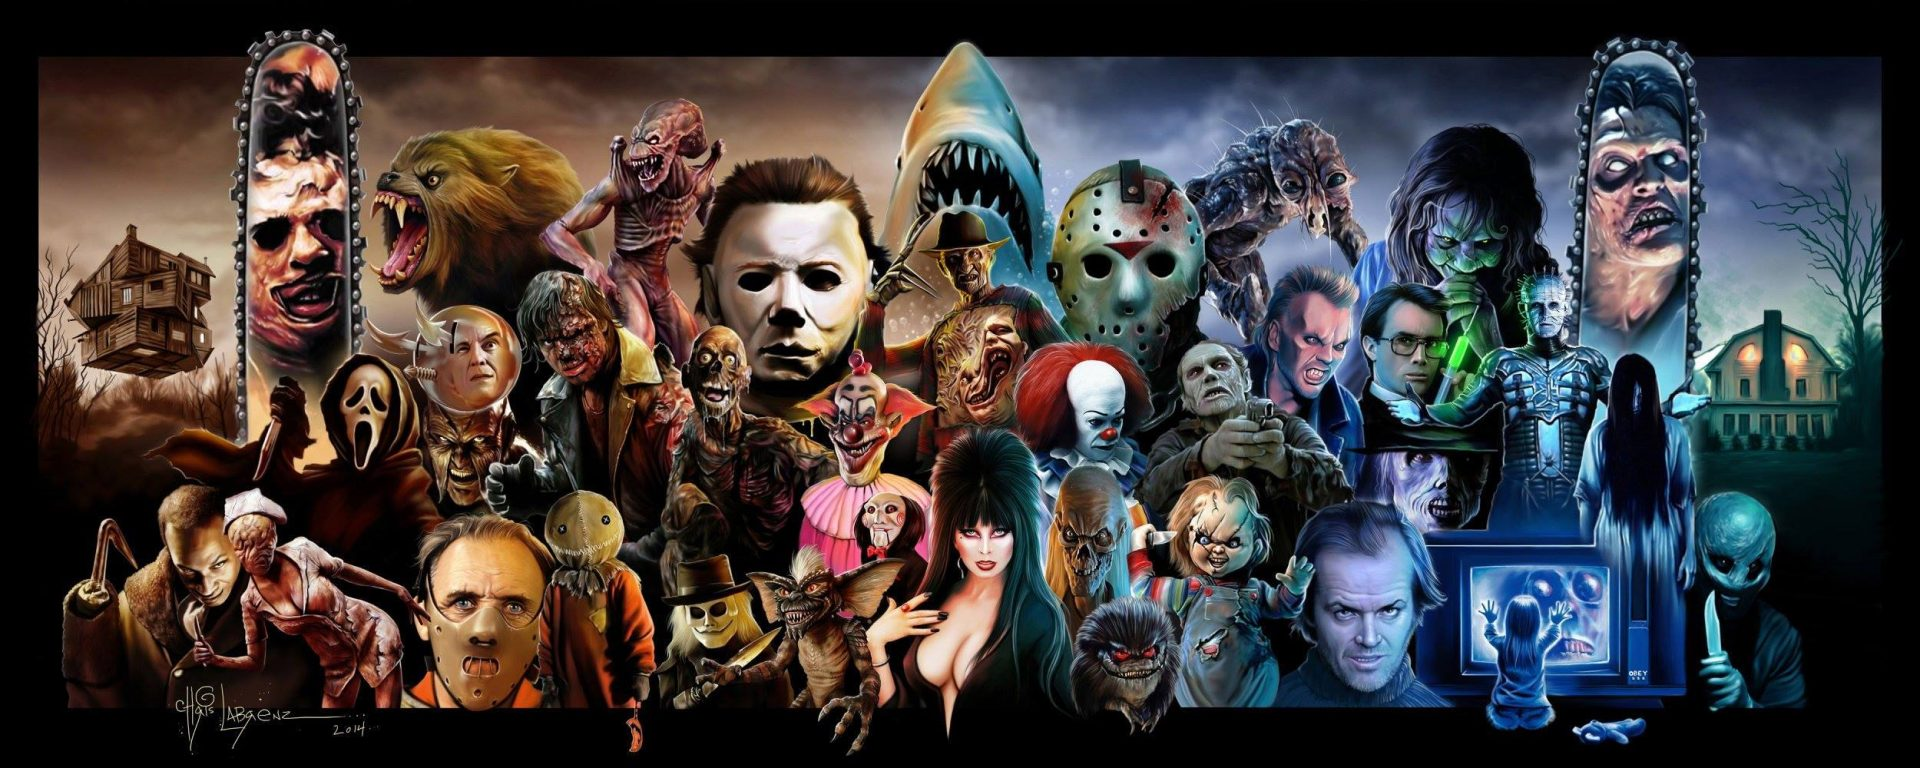 Best horror movies to watch high